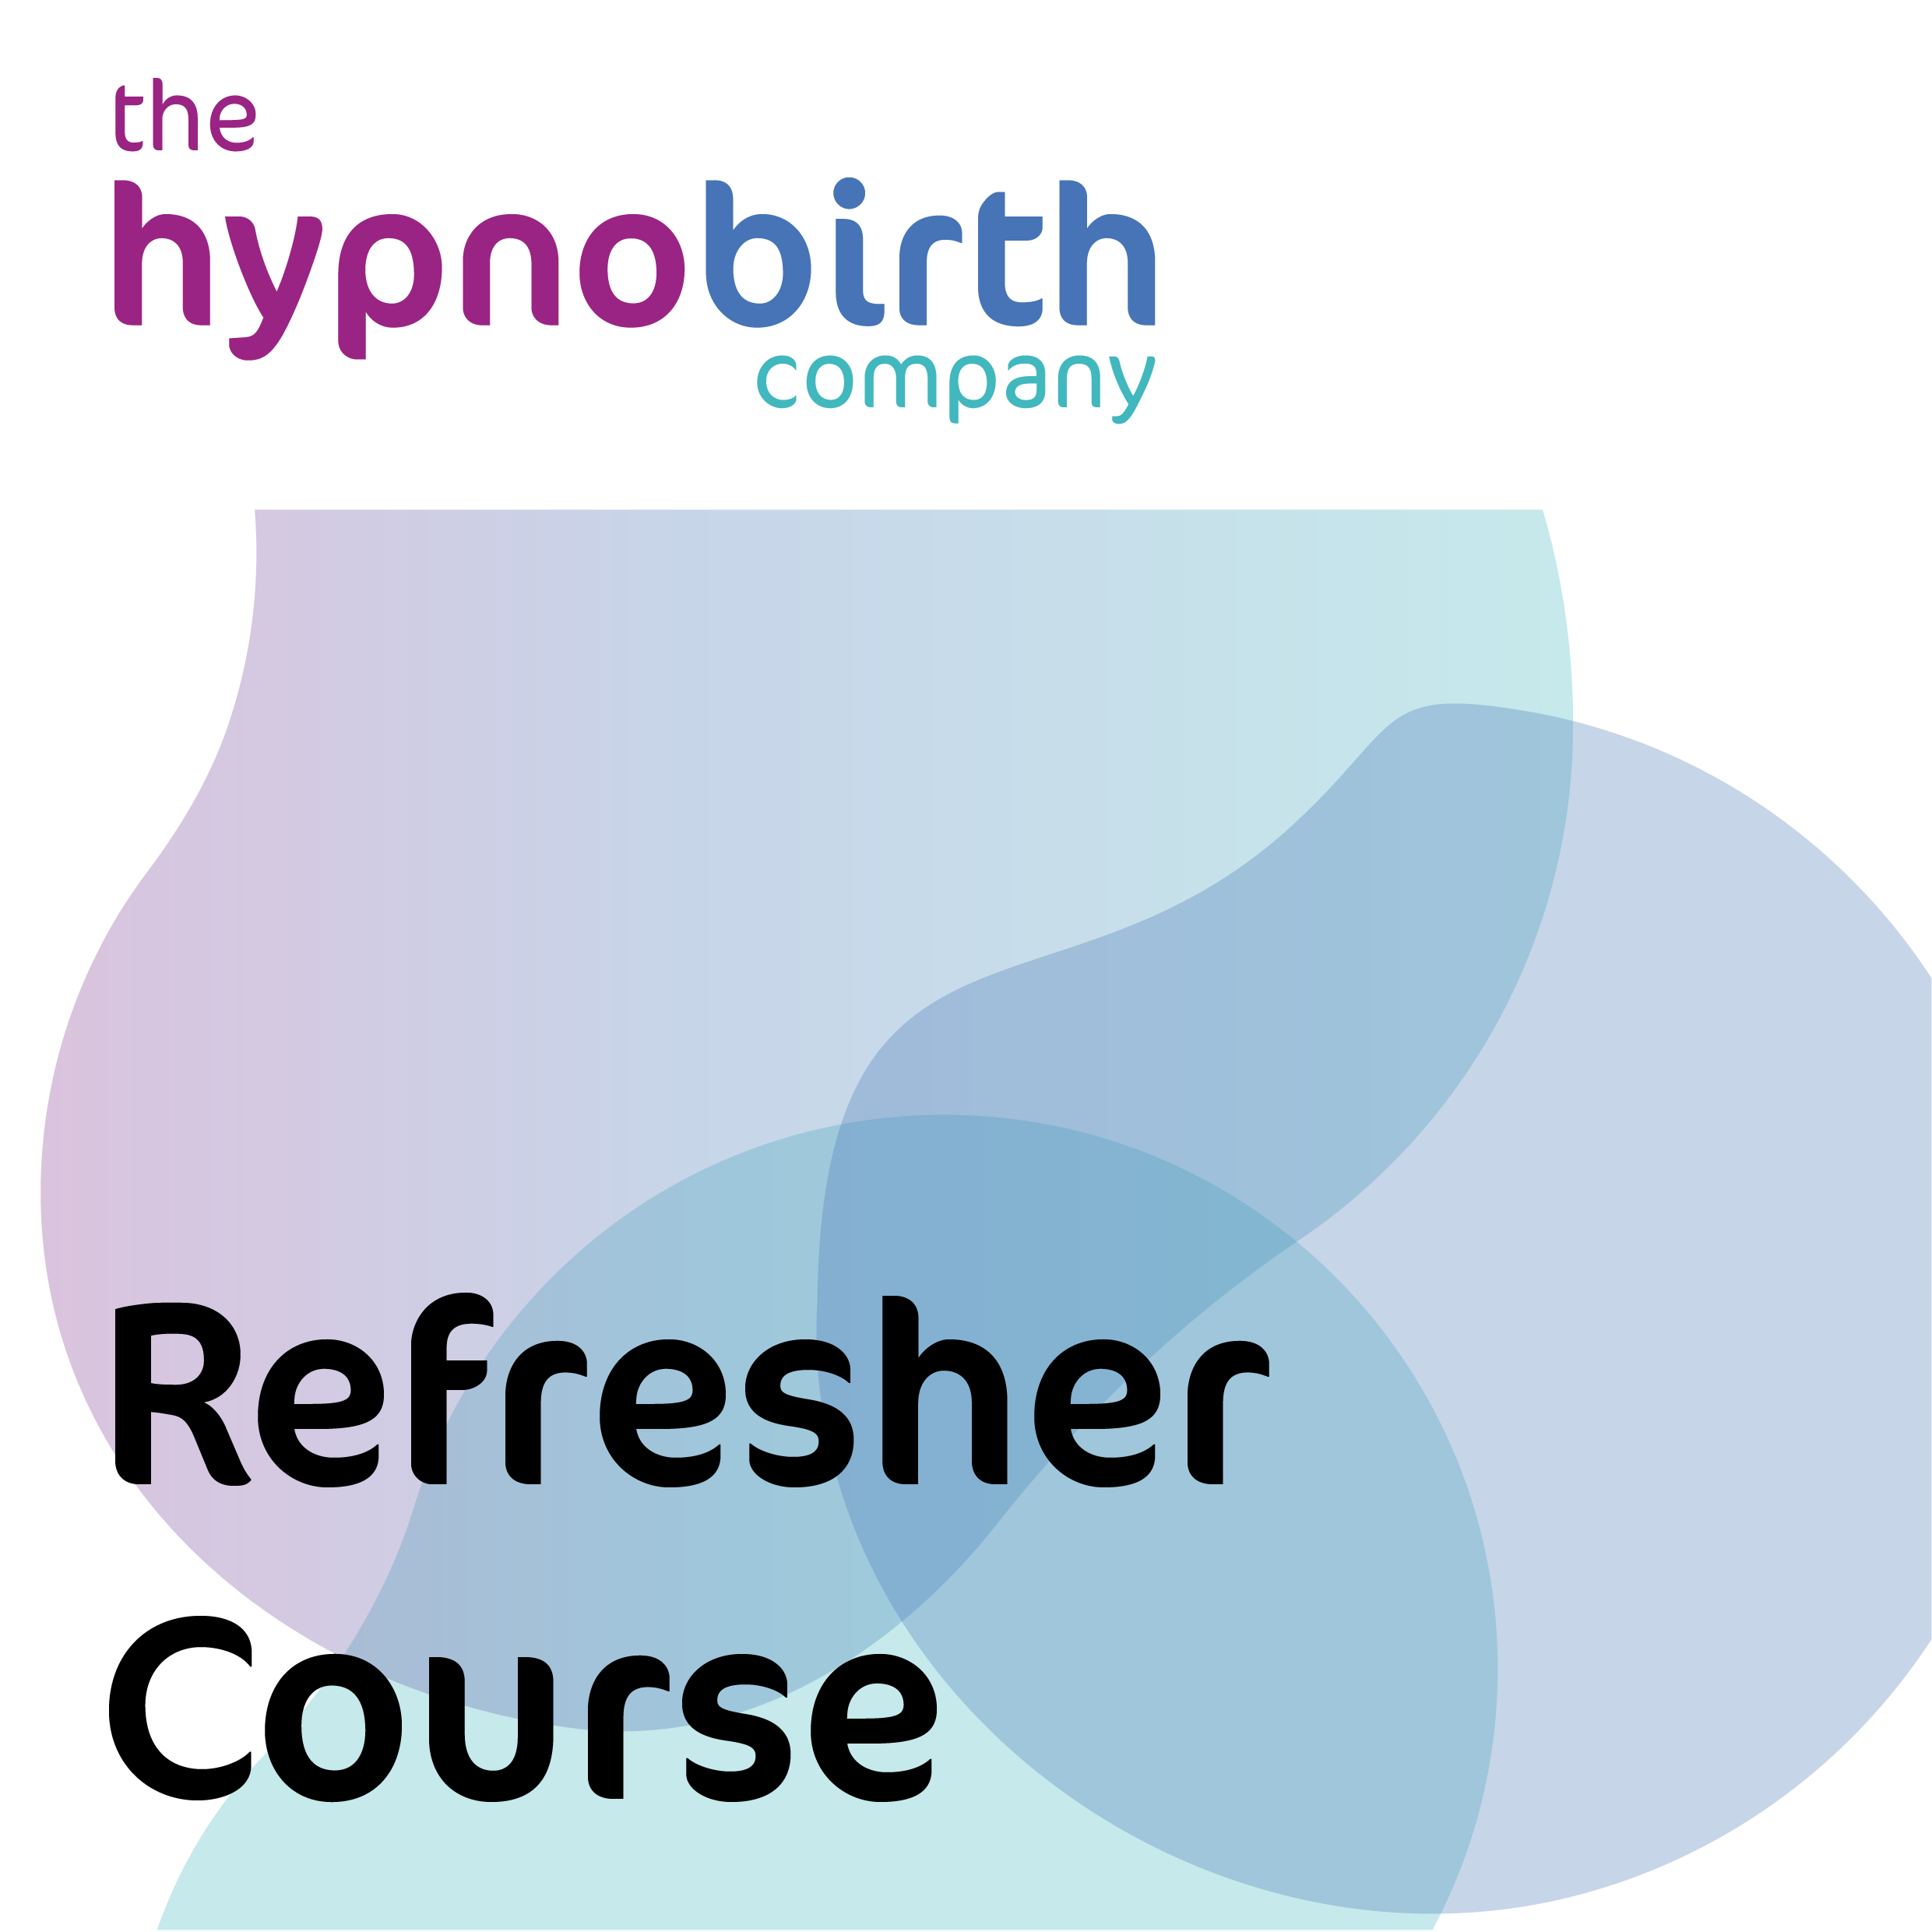 Refresher Course-01-01.png